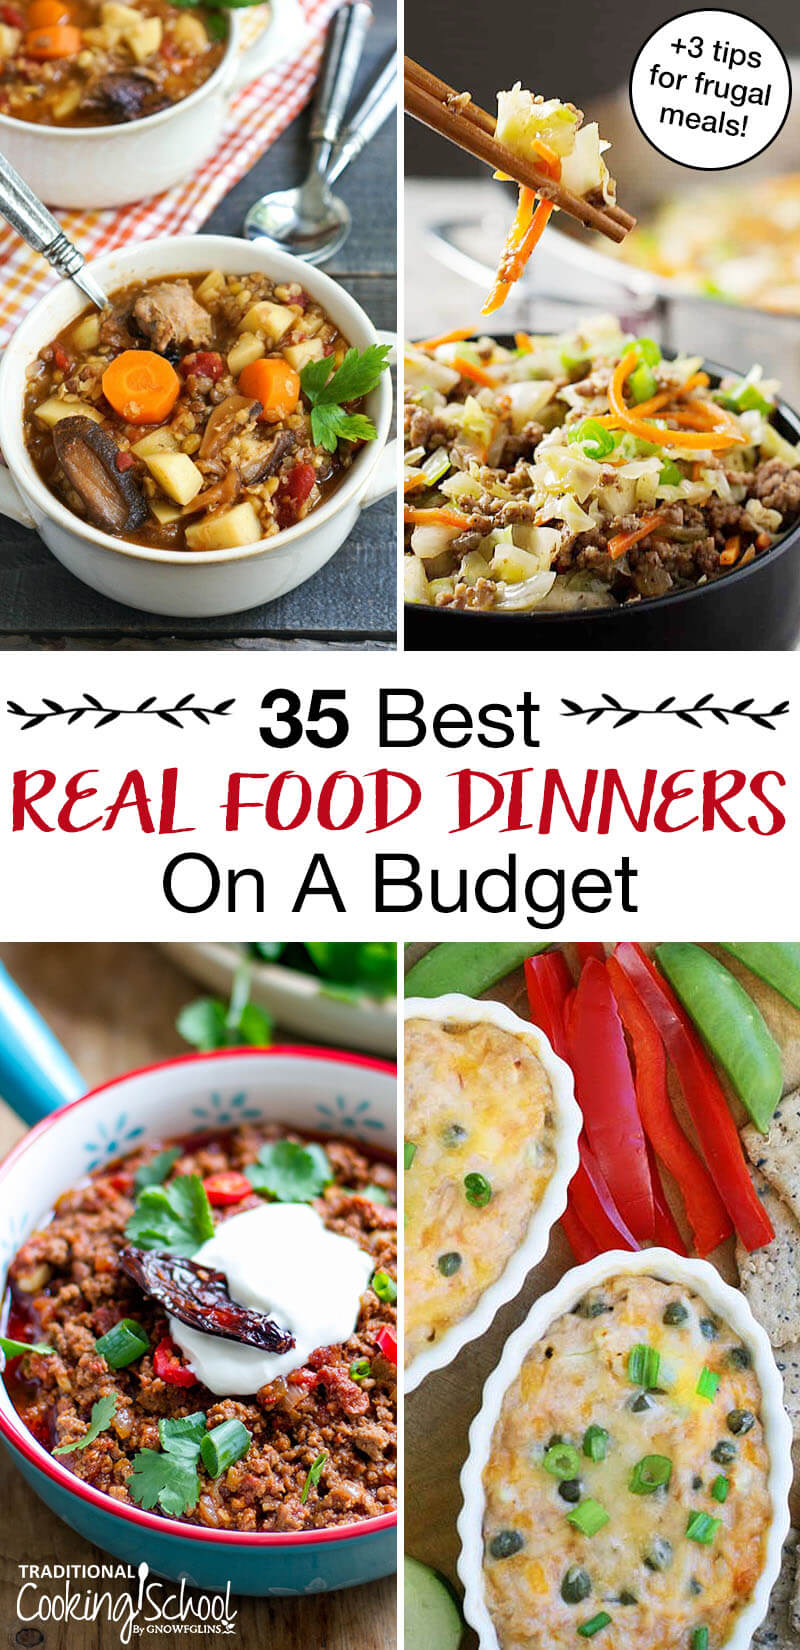 "photo collage of cheap easy and healthy meals, with text overlay: ""35 Best Real Food Dinners On A Budget (+3 tips for frugal meals!)"""